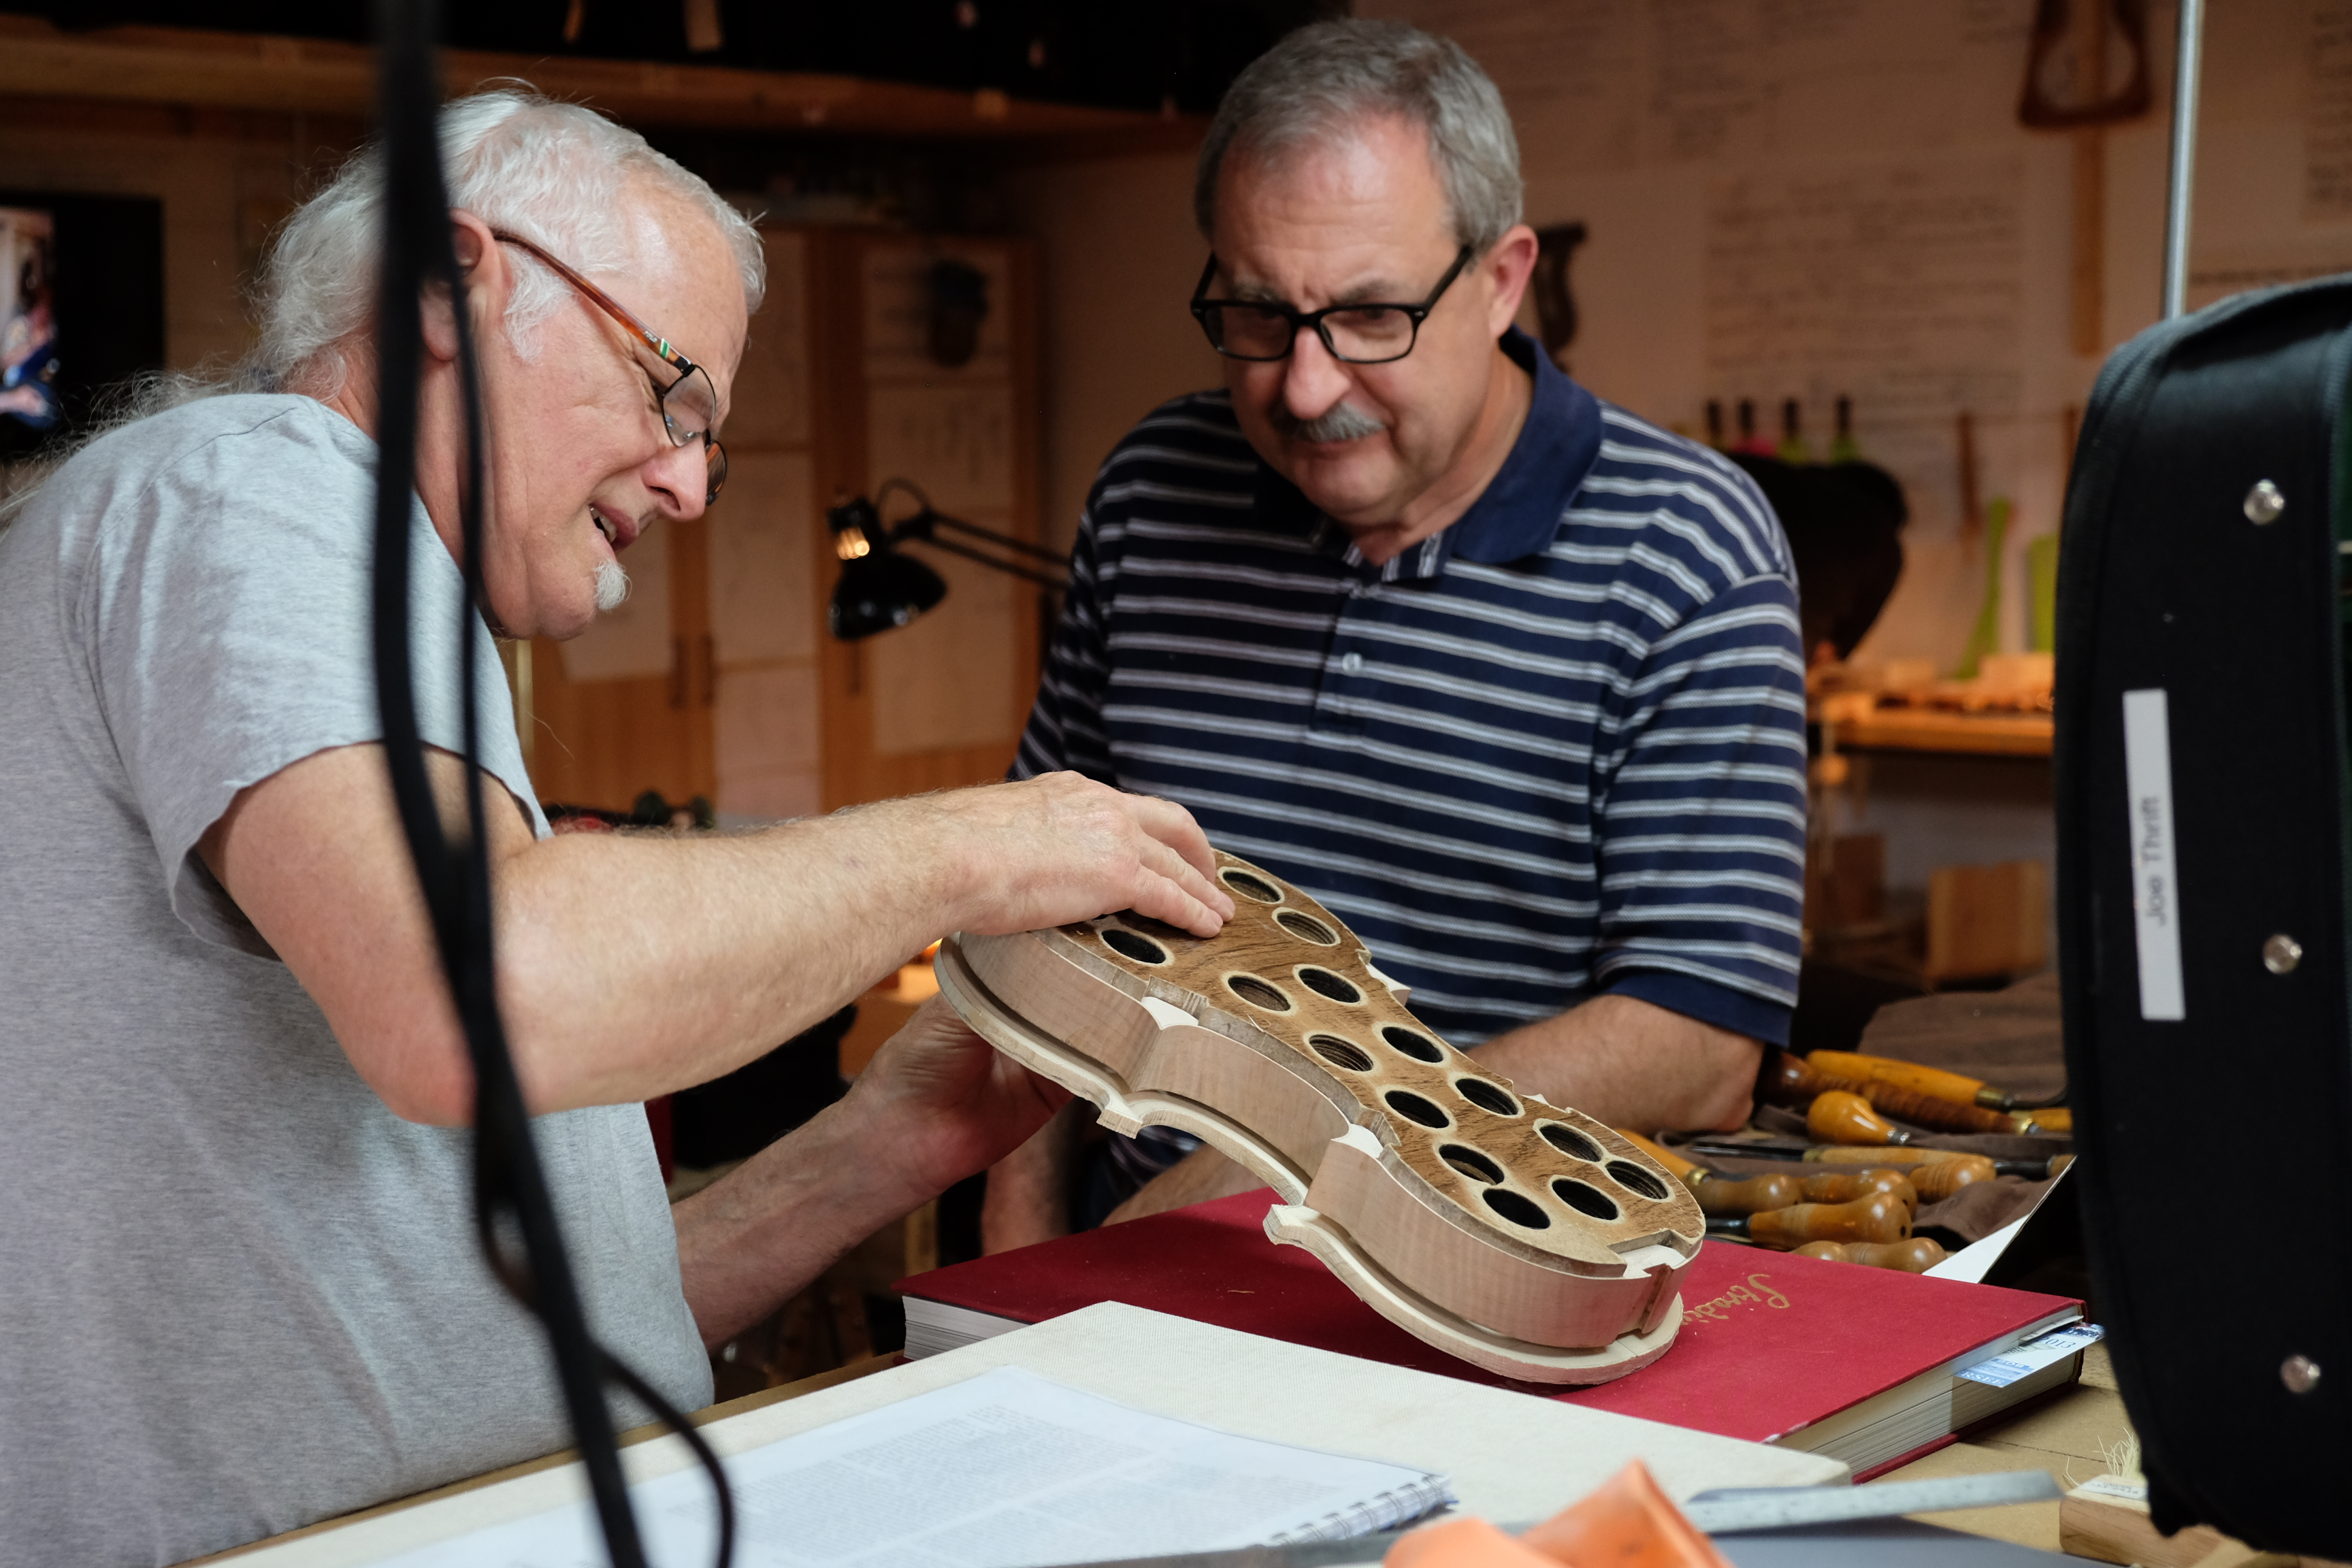 Violin makers converge for two weeks at local shop